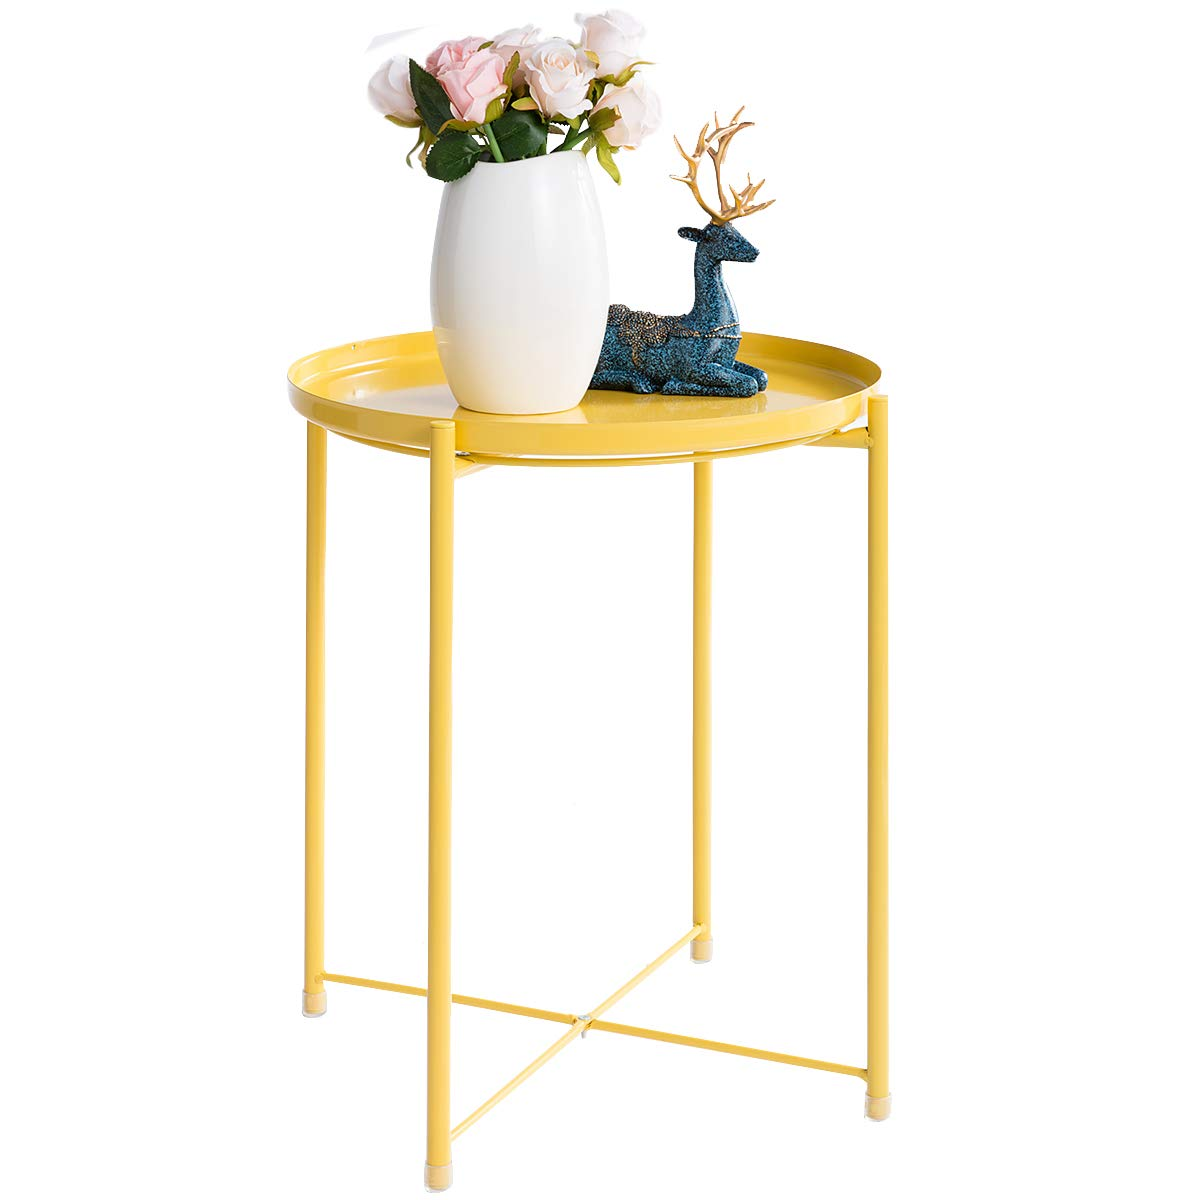 Hollyhome Tray Metal End Table Sofa Table Small Round Side Tables Anti Rust And Waterproof Outdoor Indoor Snack Table Accent Coffee Table H 20 28 X D 16 38 Yellow Cream Buy Online In Faroe Islands